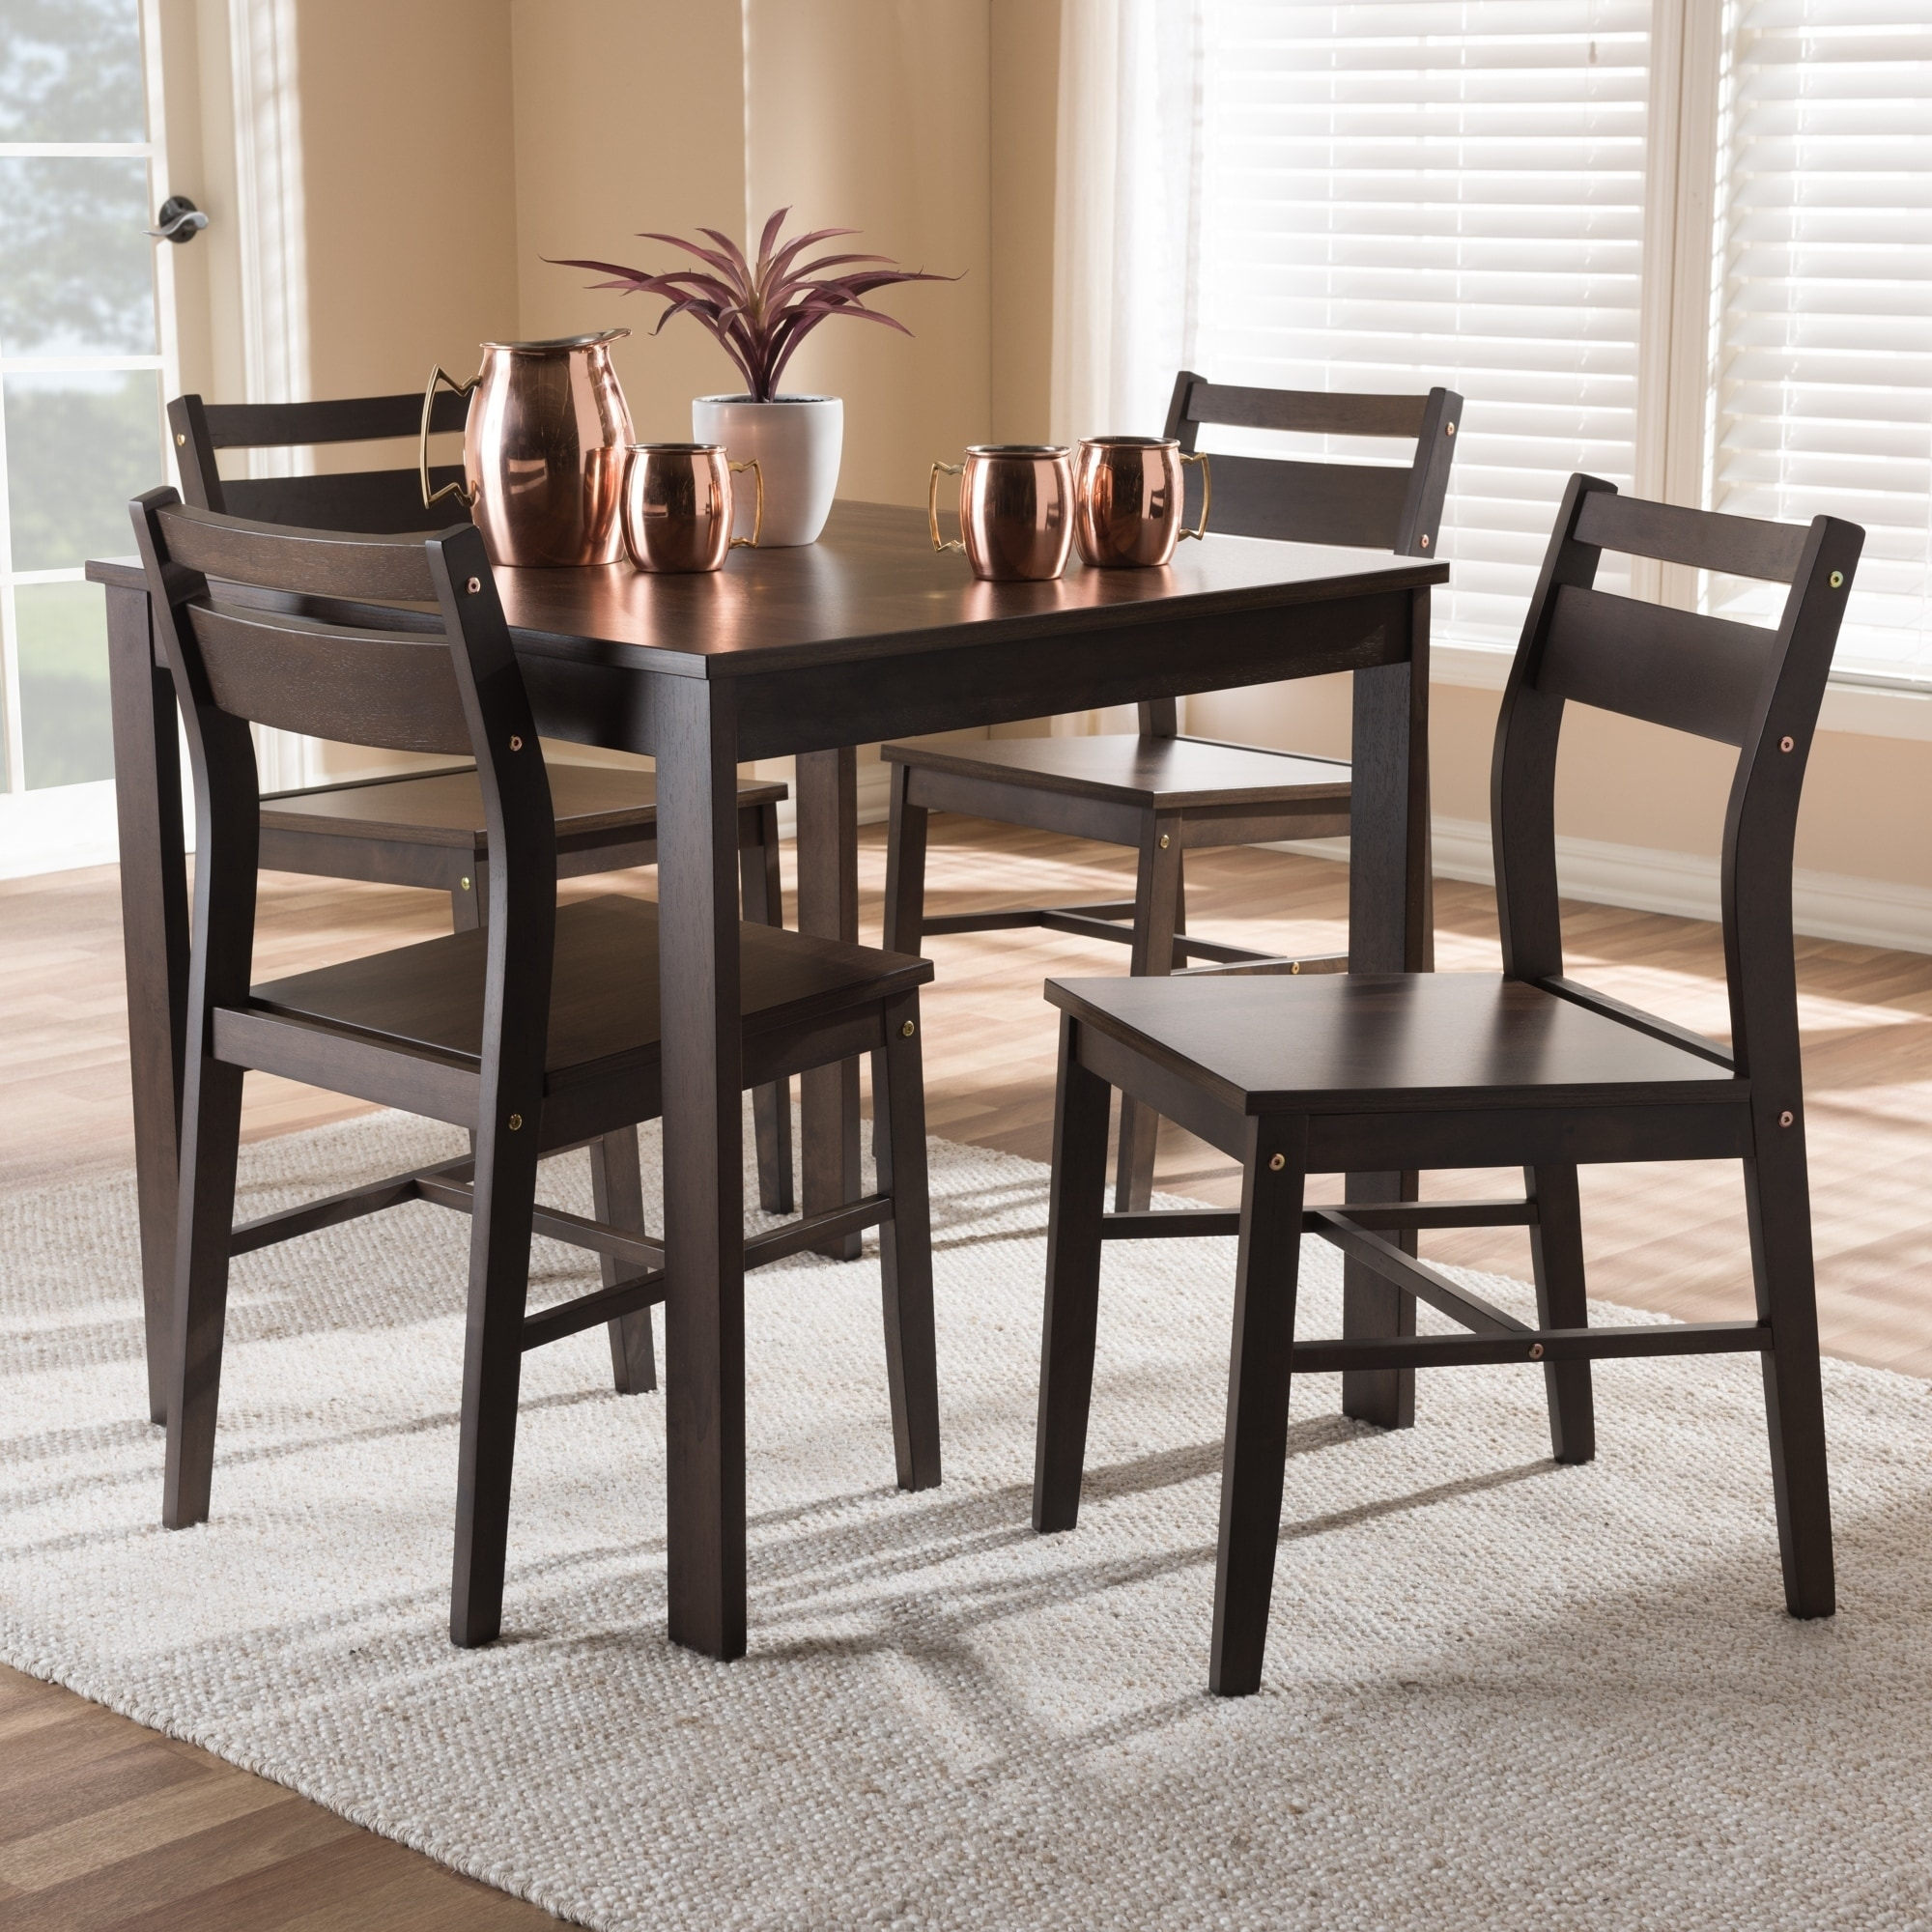 Baxton Studio Contemporary 5-Piece Dining Set by